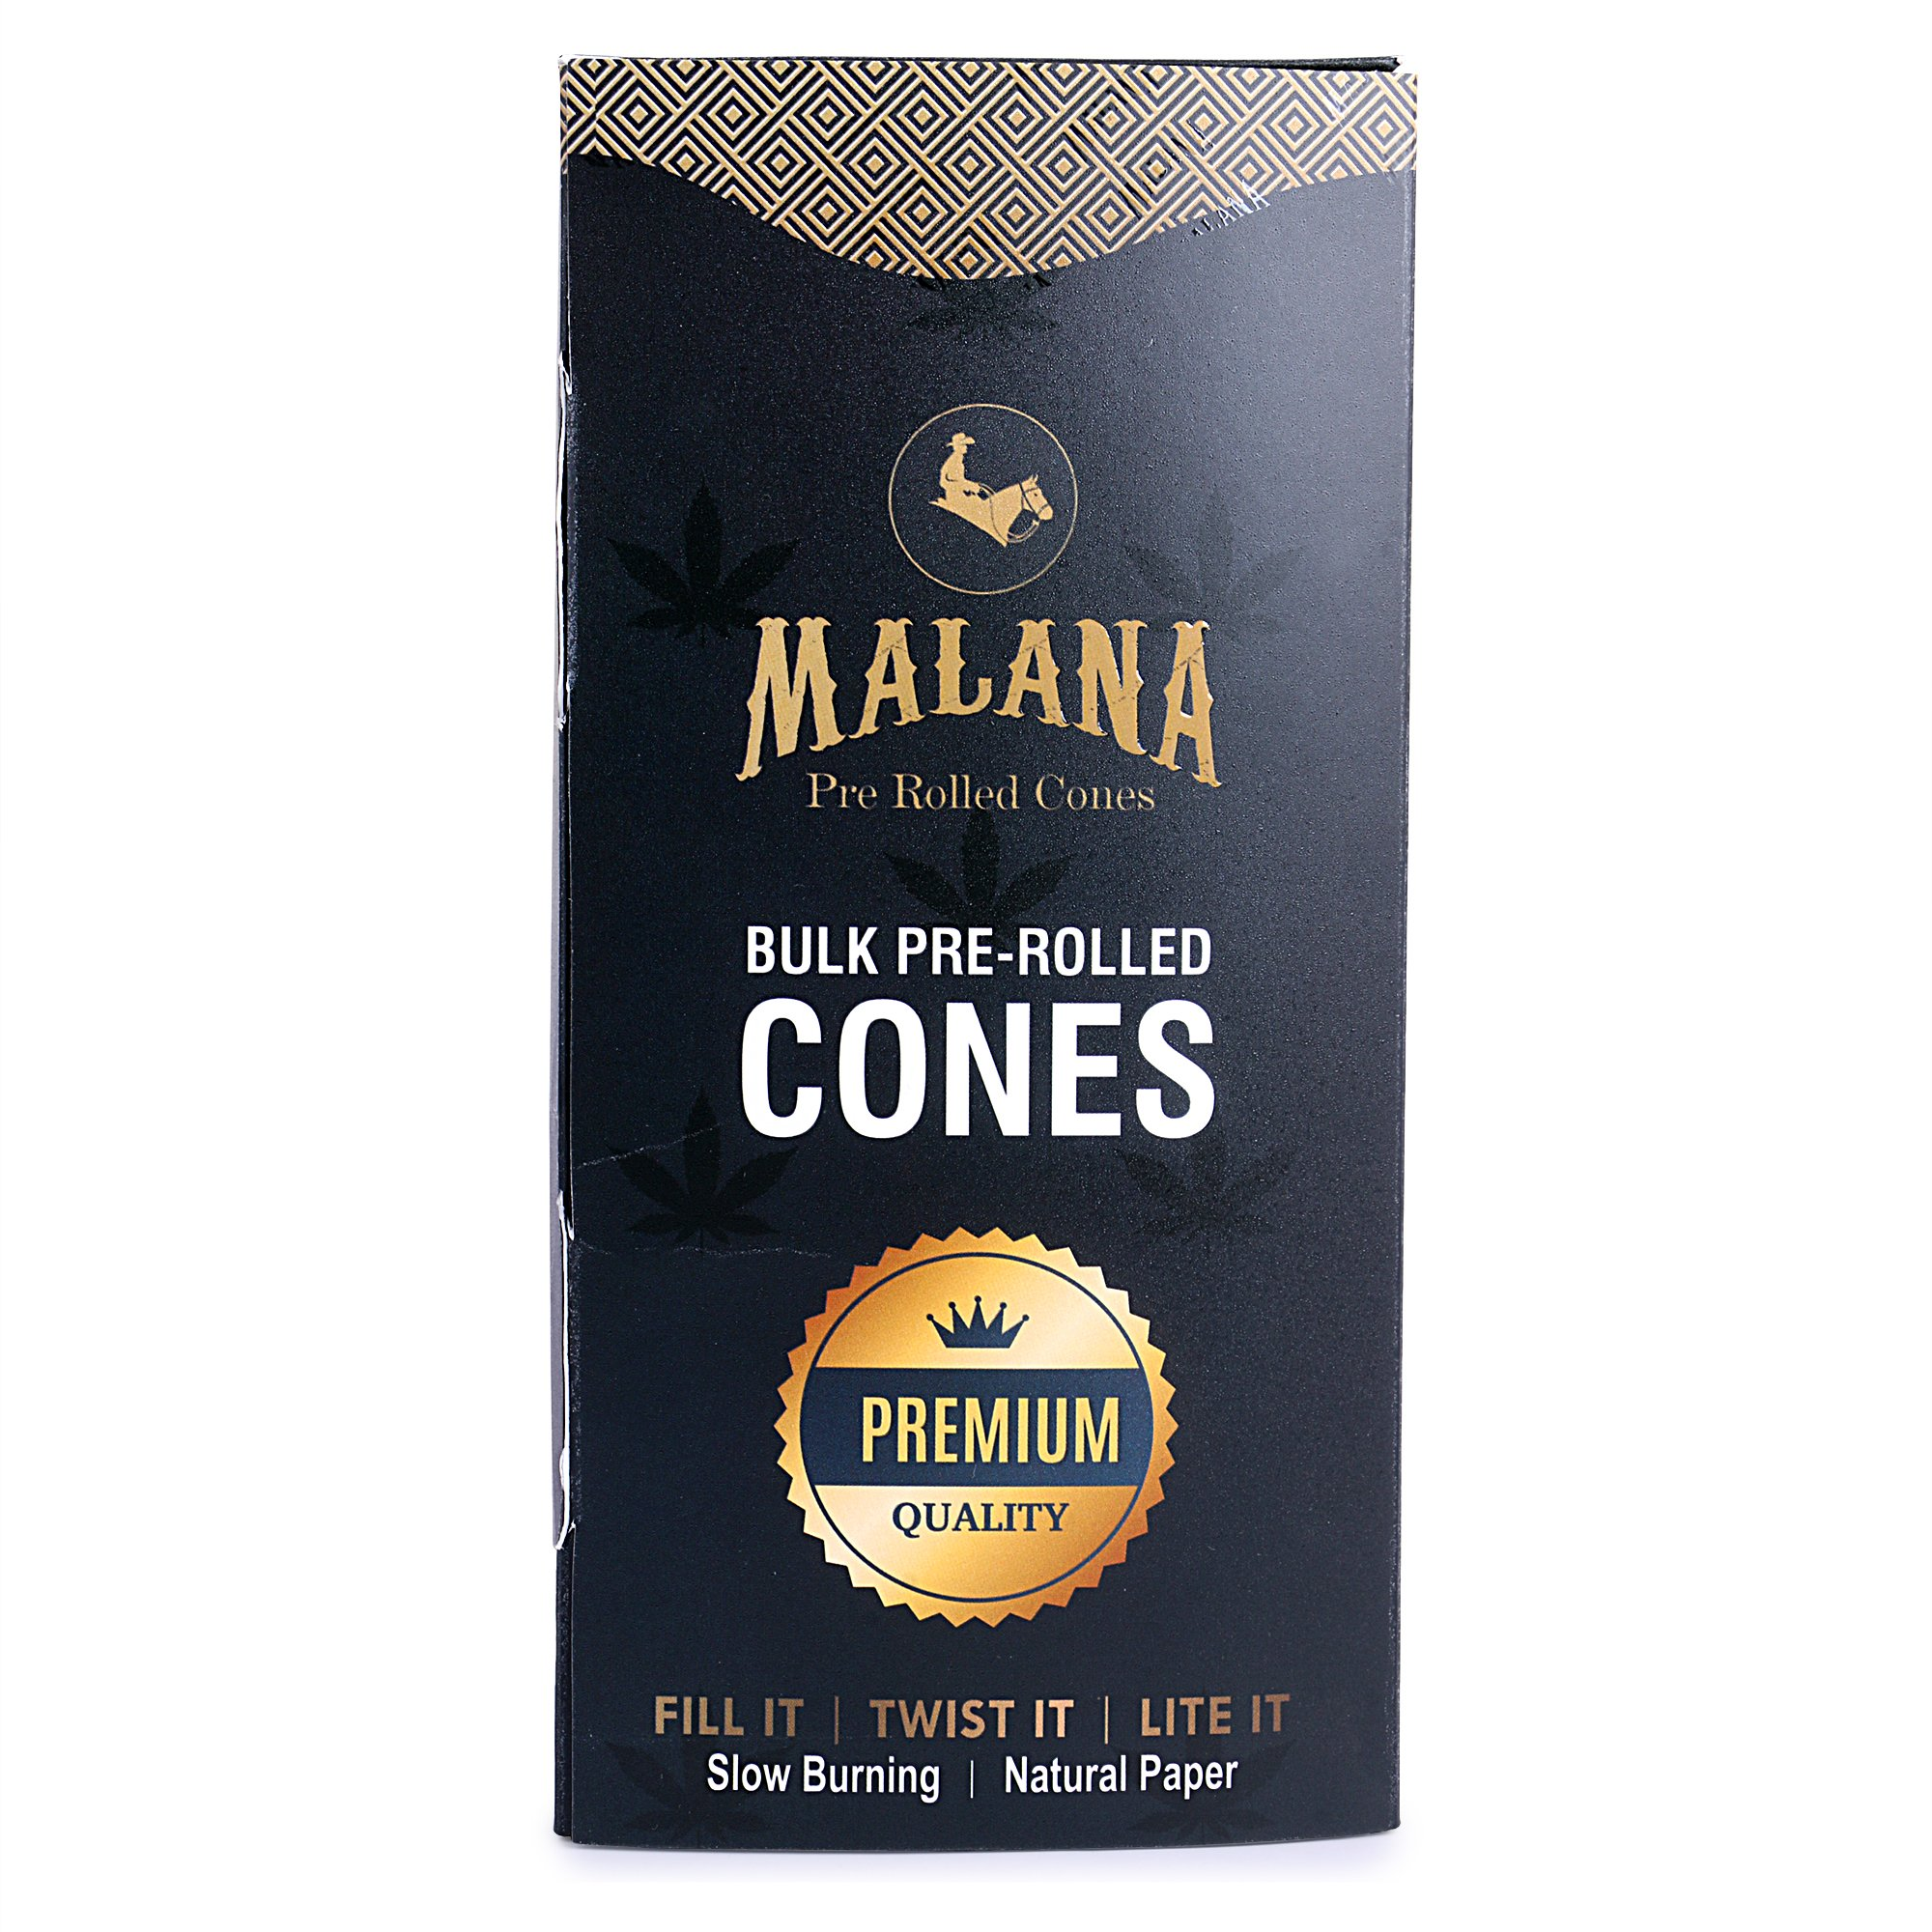 Malana Pre Rolled Cones - King Size 800 Count (Natural Brown Paper) 109/26